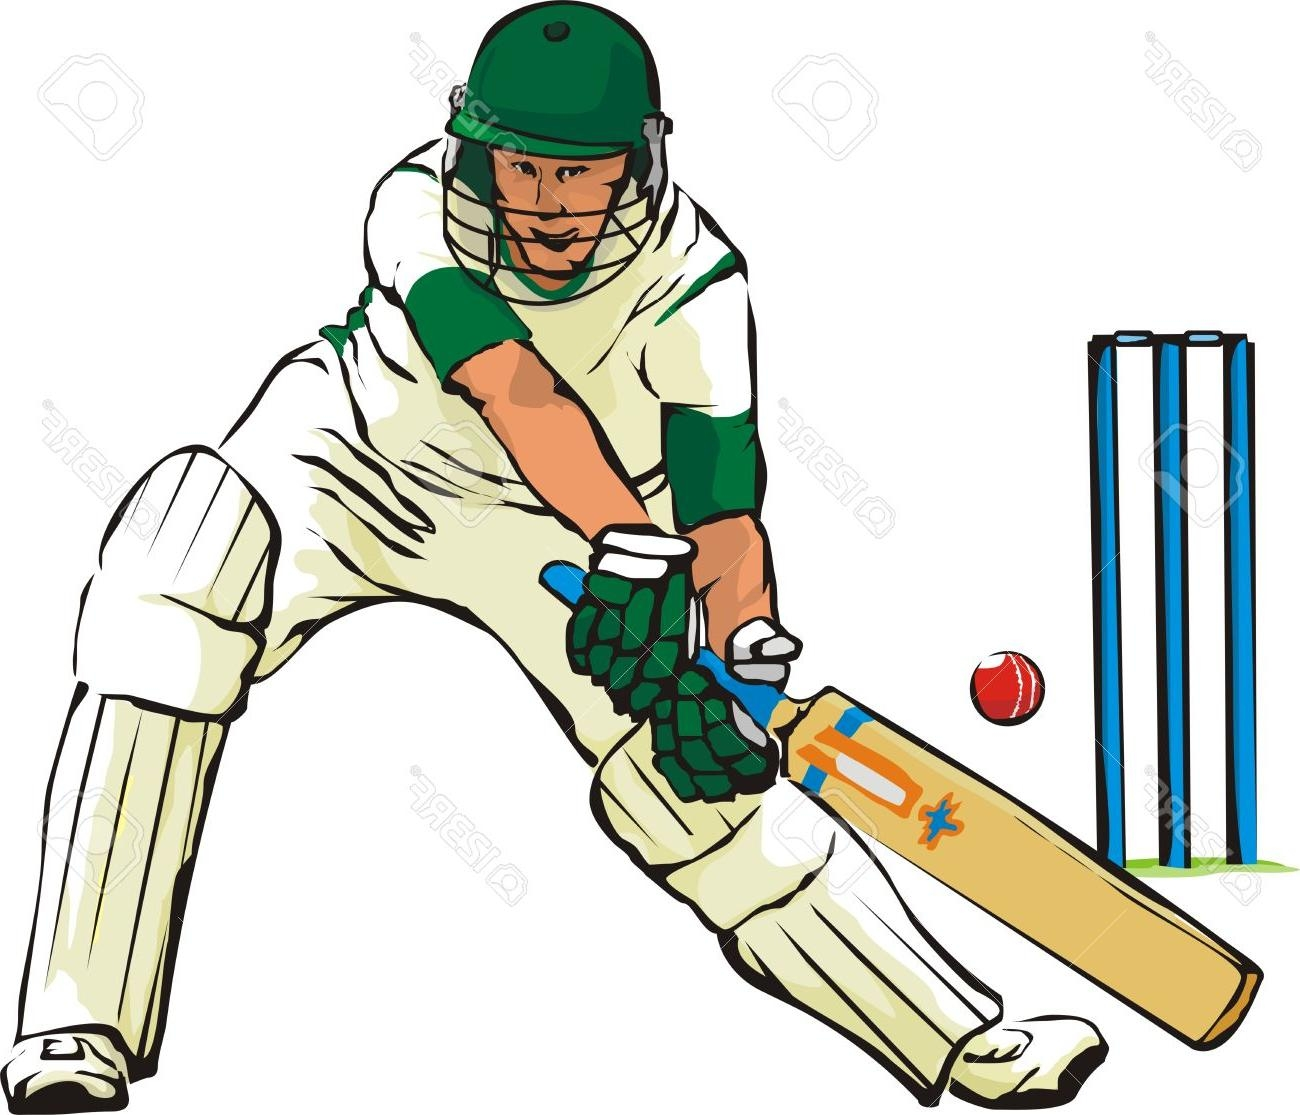 Cricket clipart, Cricket Transparent FREE for download on.